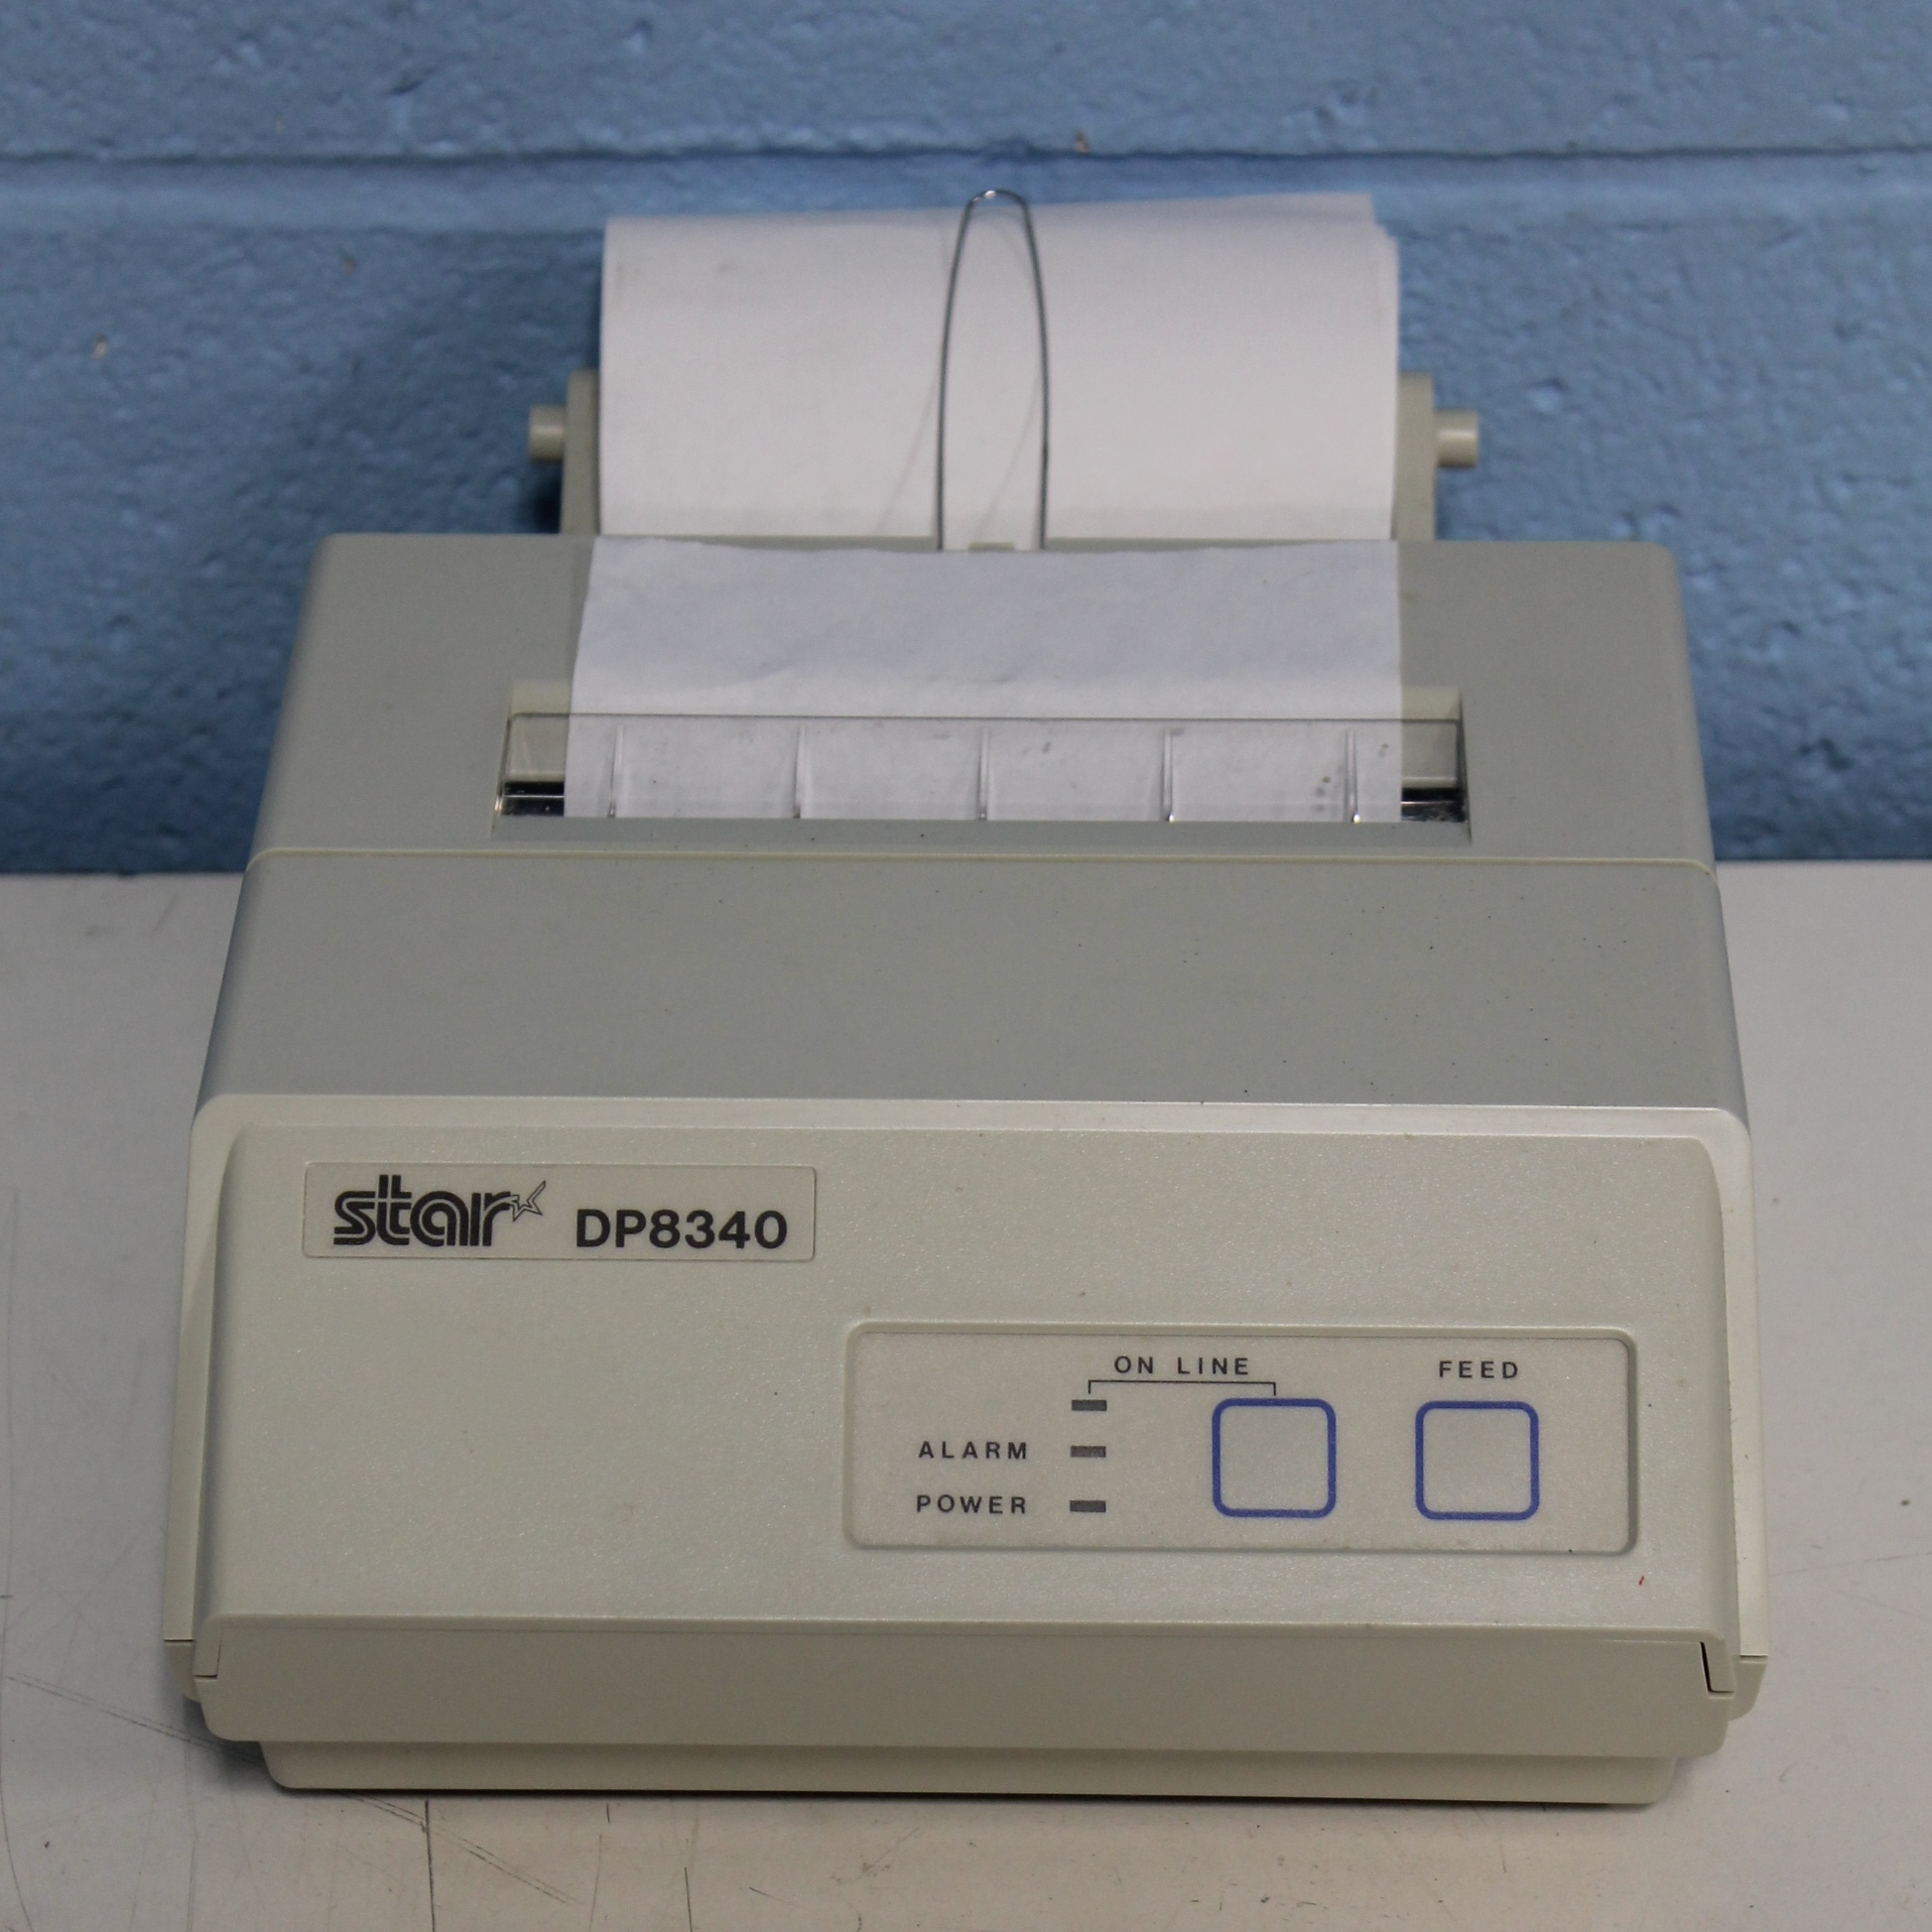 Star Micronics DP8340 Dot Matrix Printer Image